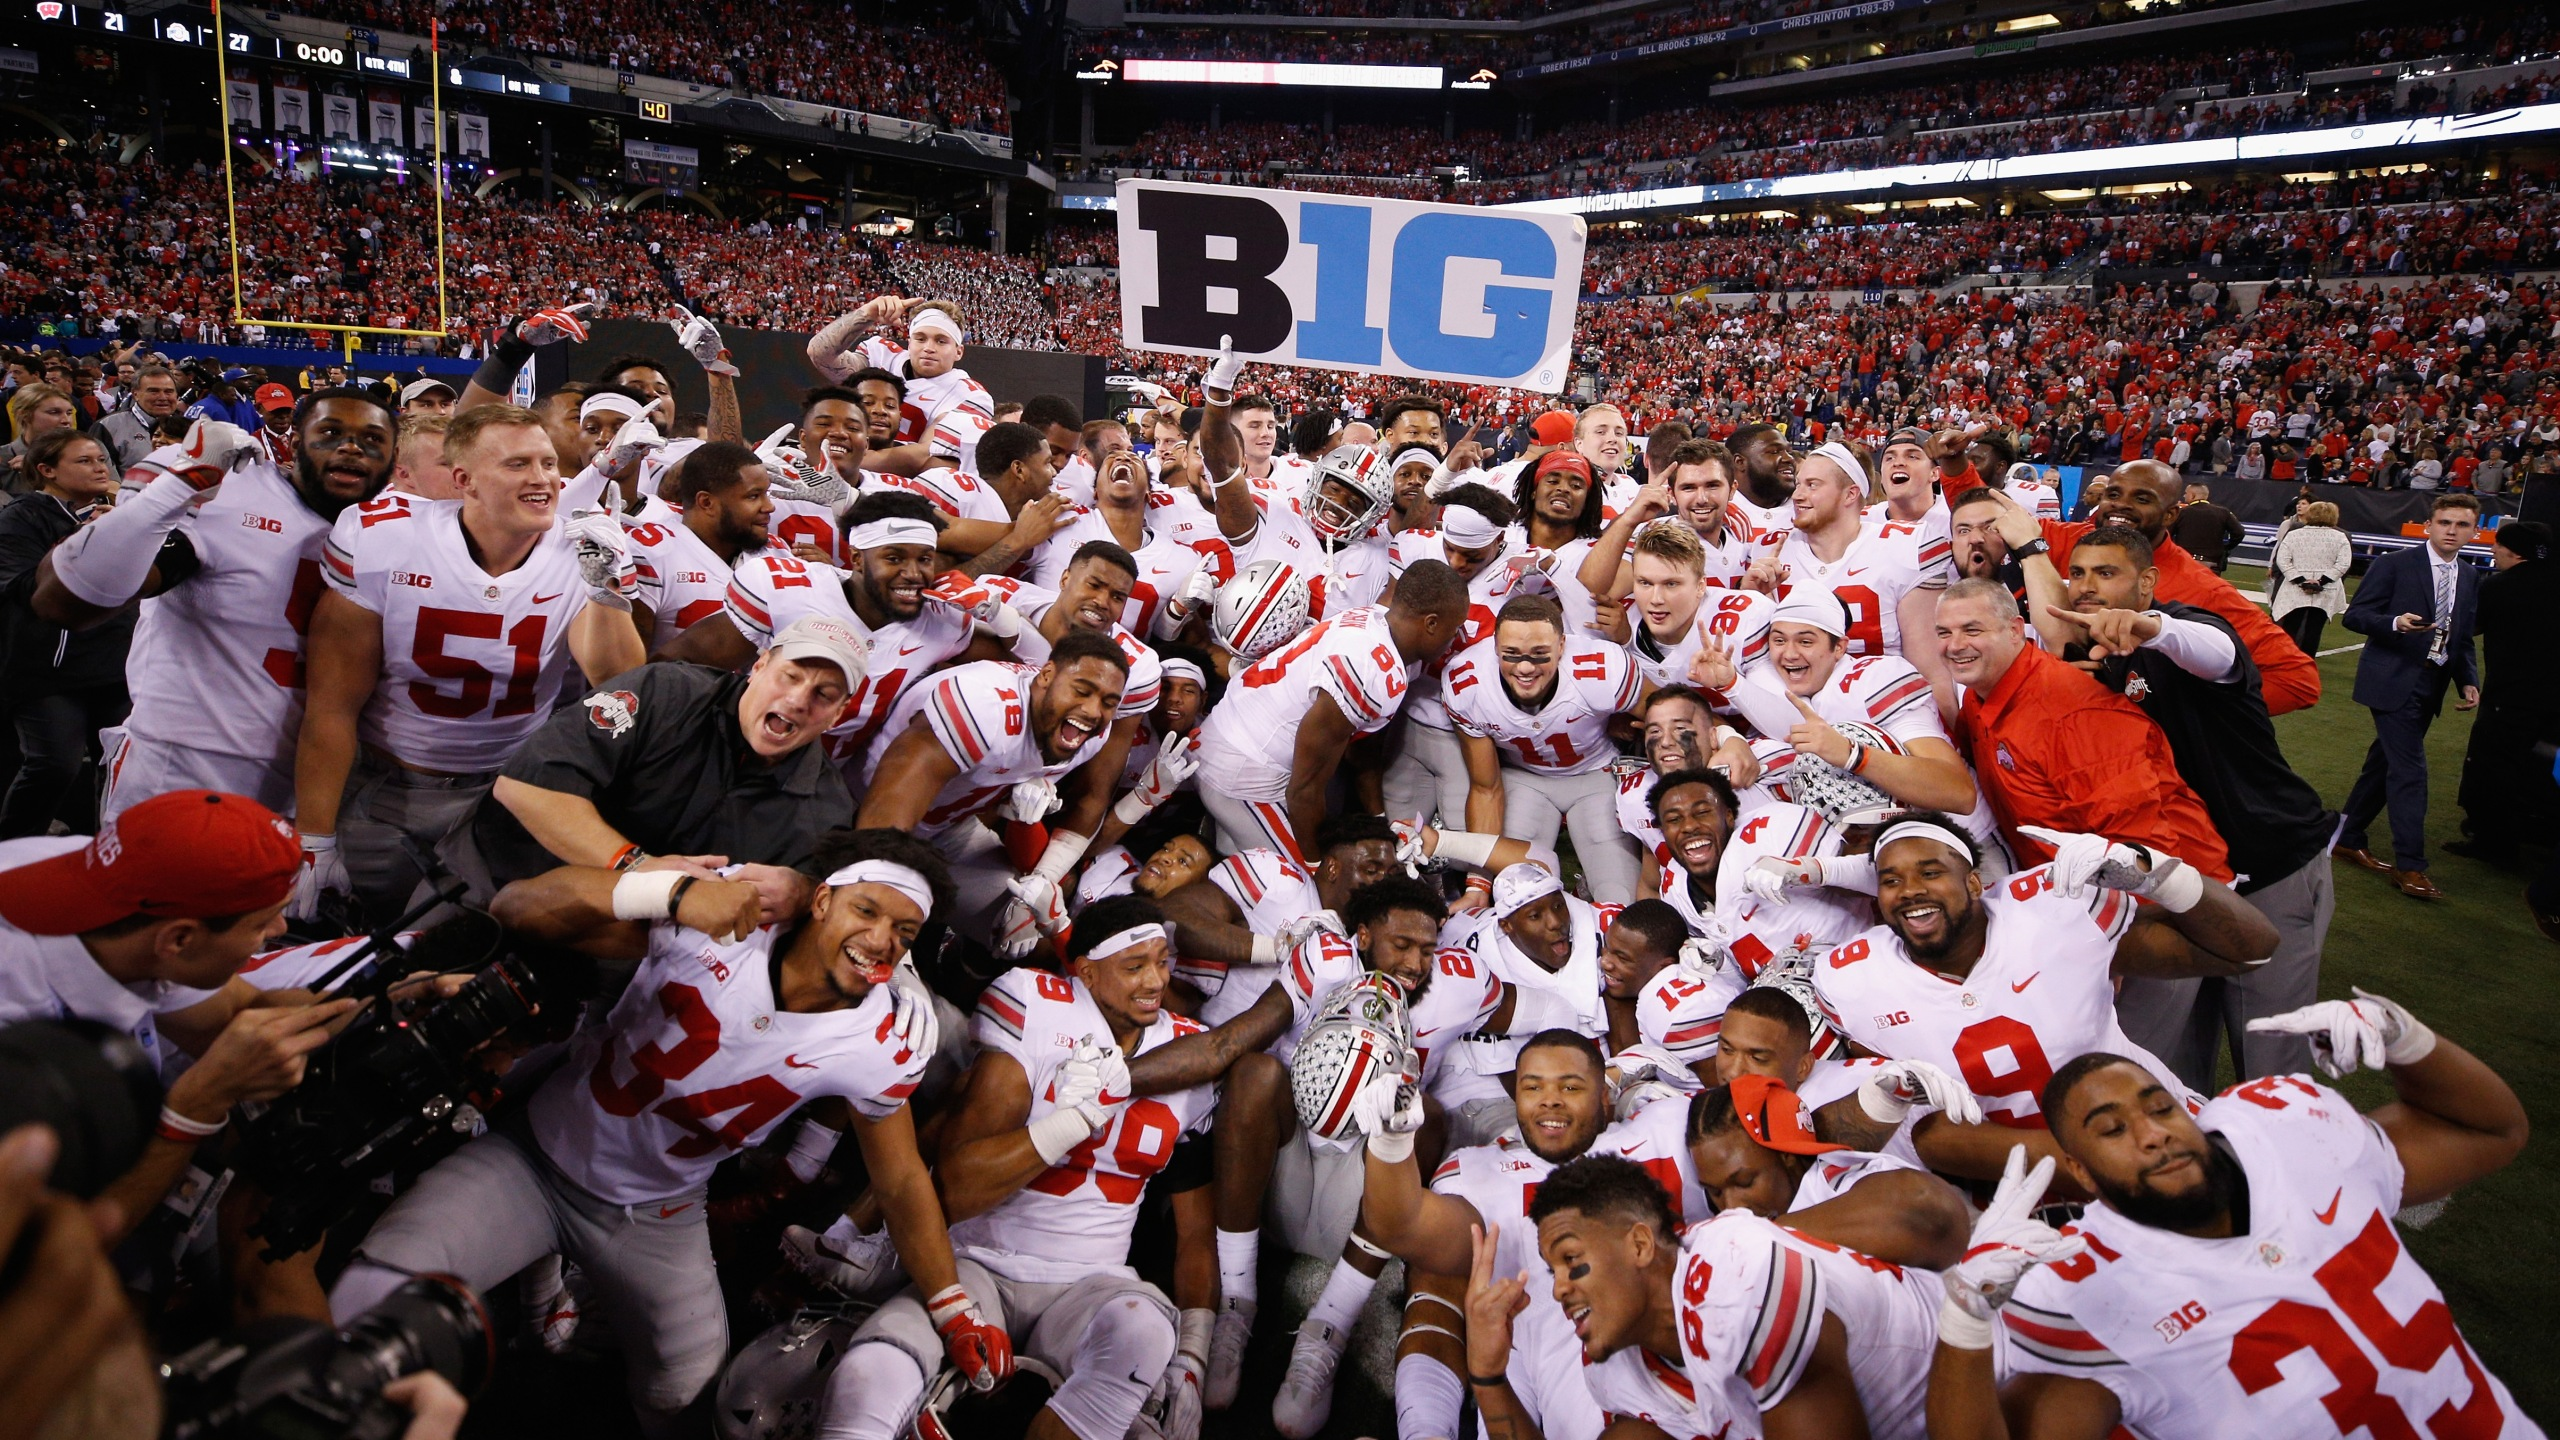 Big Ten Championship - Ohio State v Wisconsin_369439